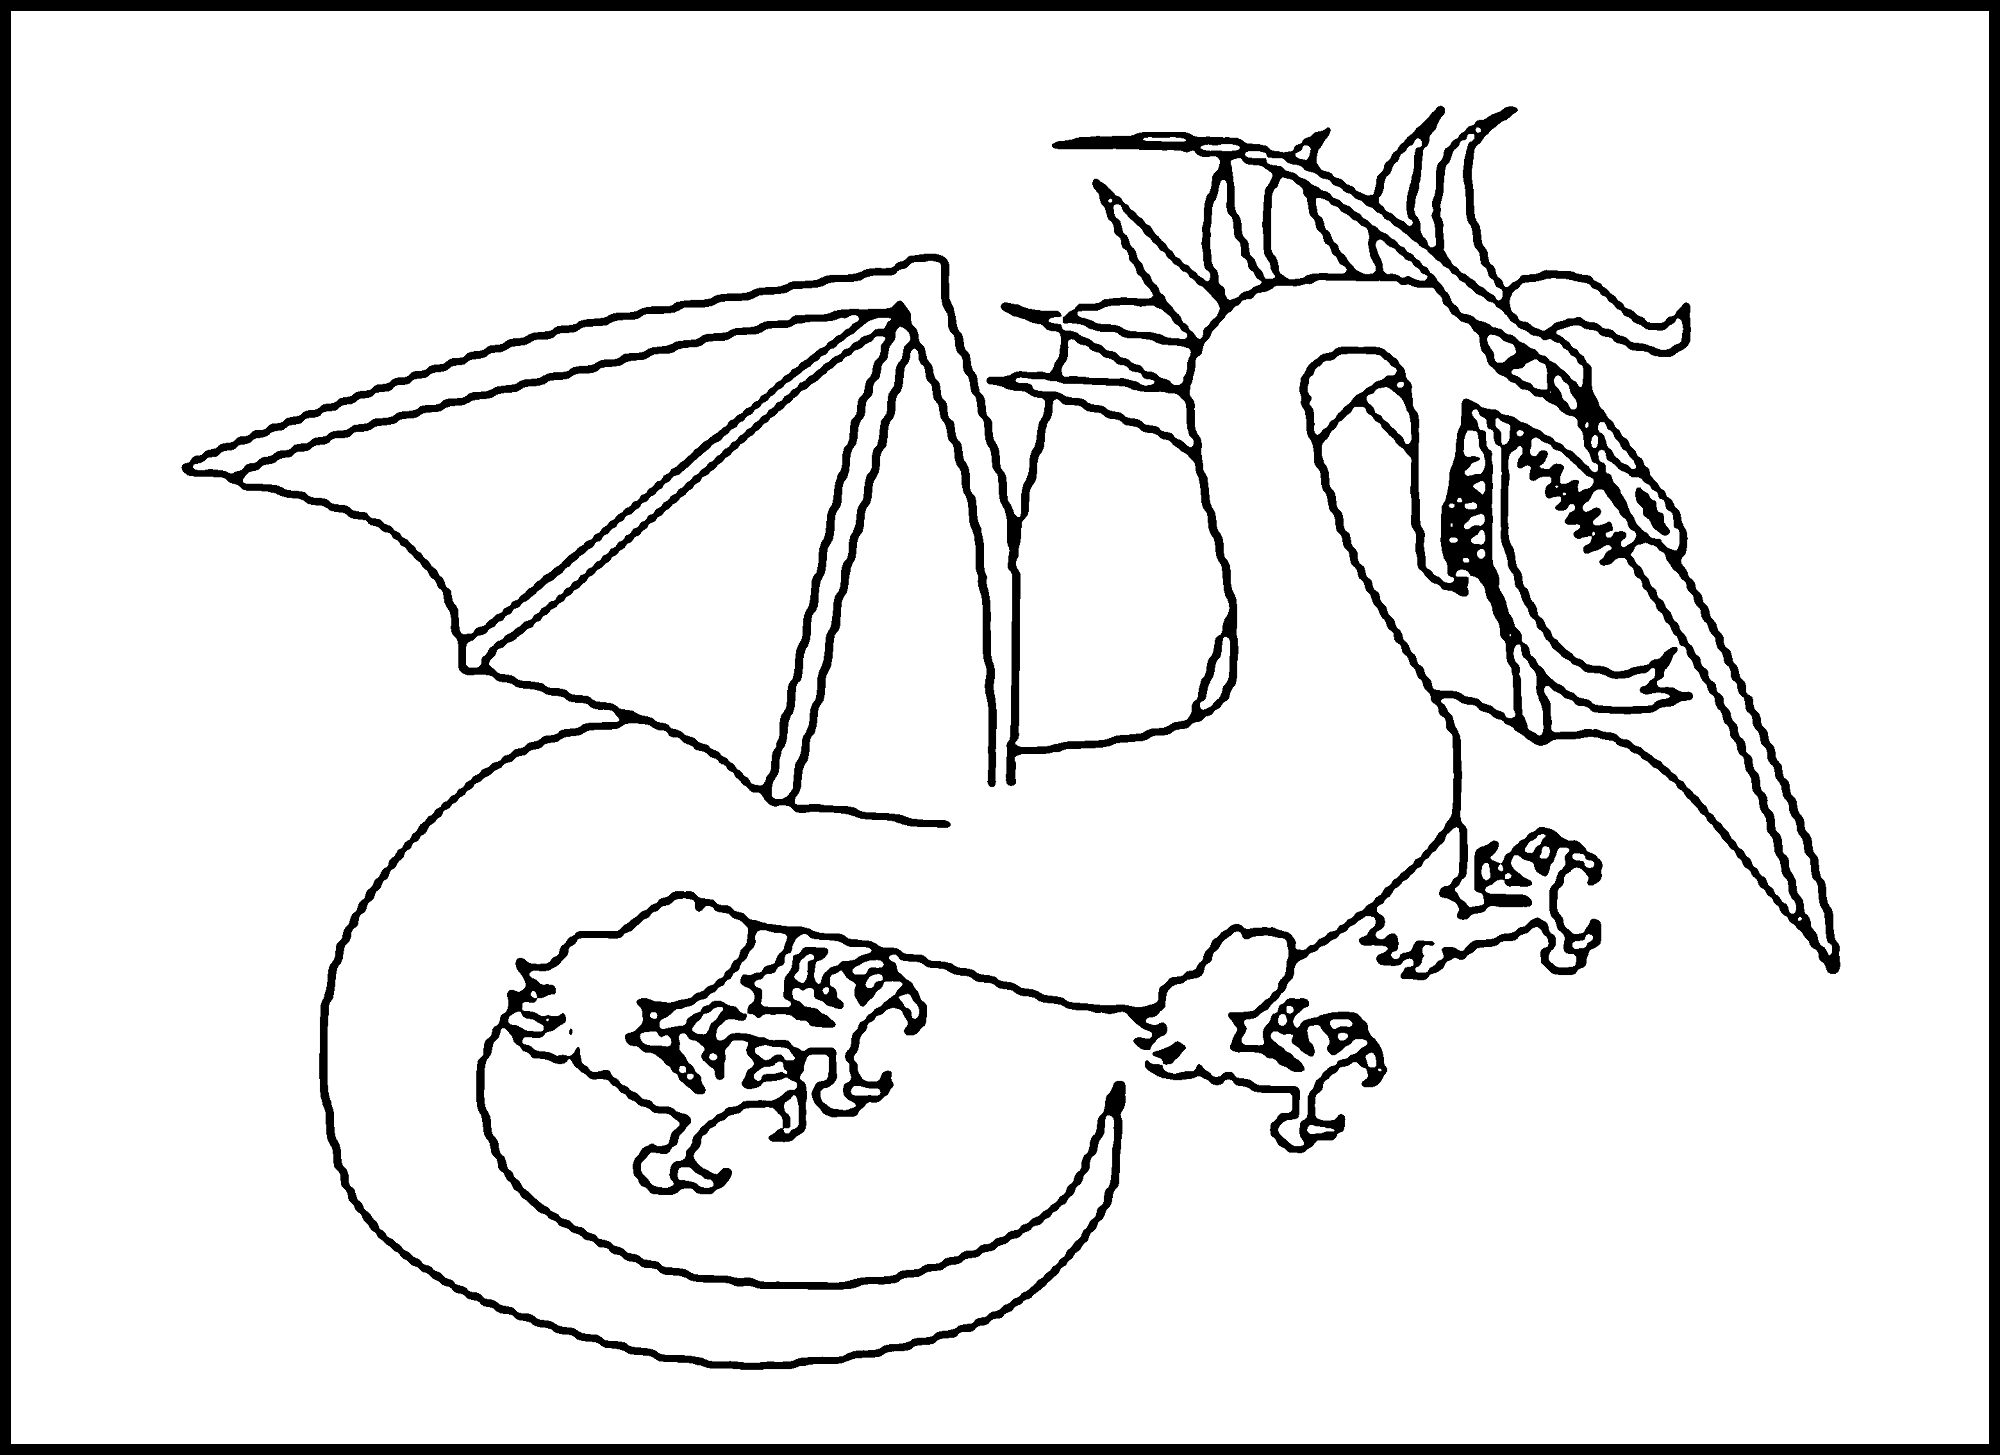 free coloring pages of dragons chinese dragon coloring pages to download and print for free pages dragons coloring of free